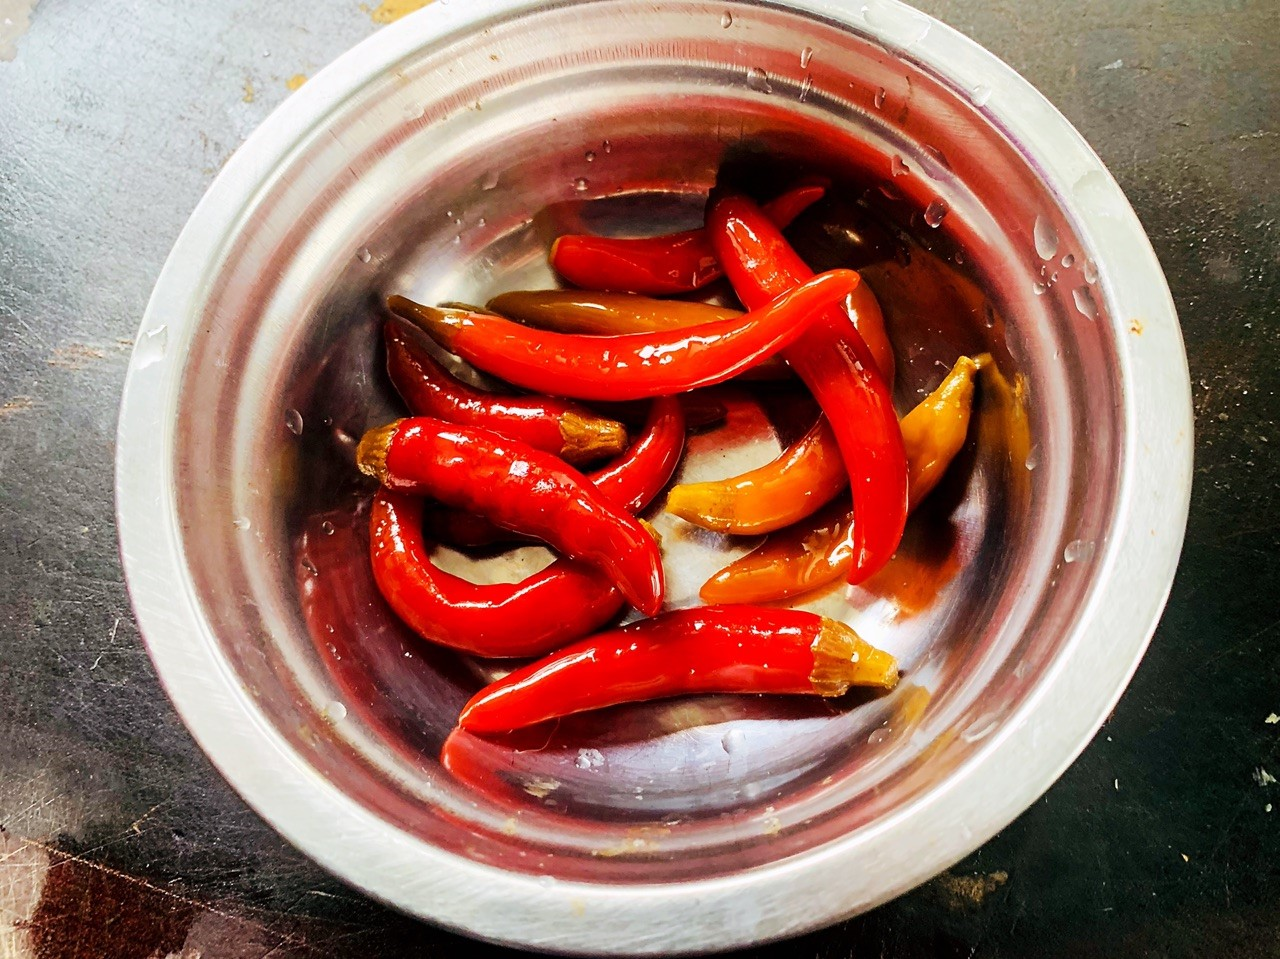 cut the pickled sour pepper into segments